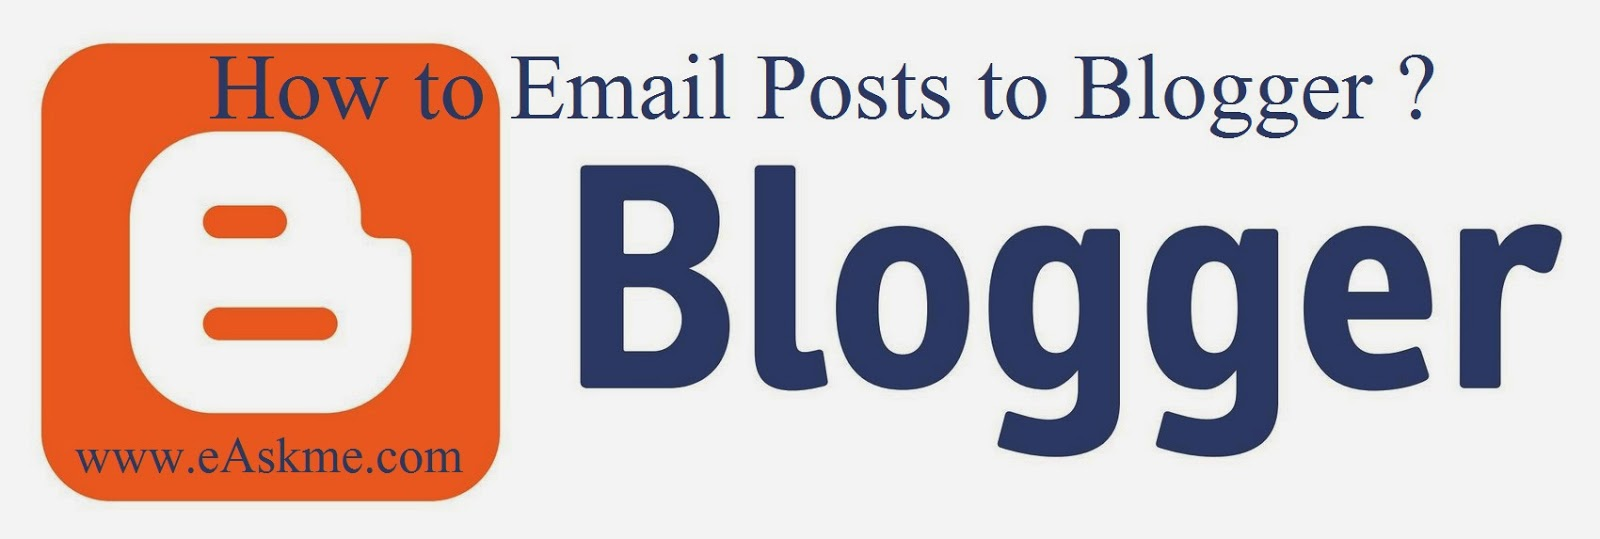 How to Email Posts to Blogger : eAskme